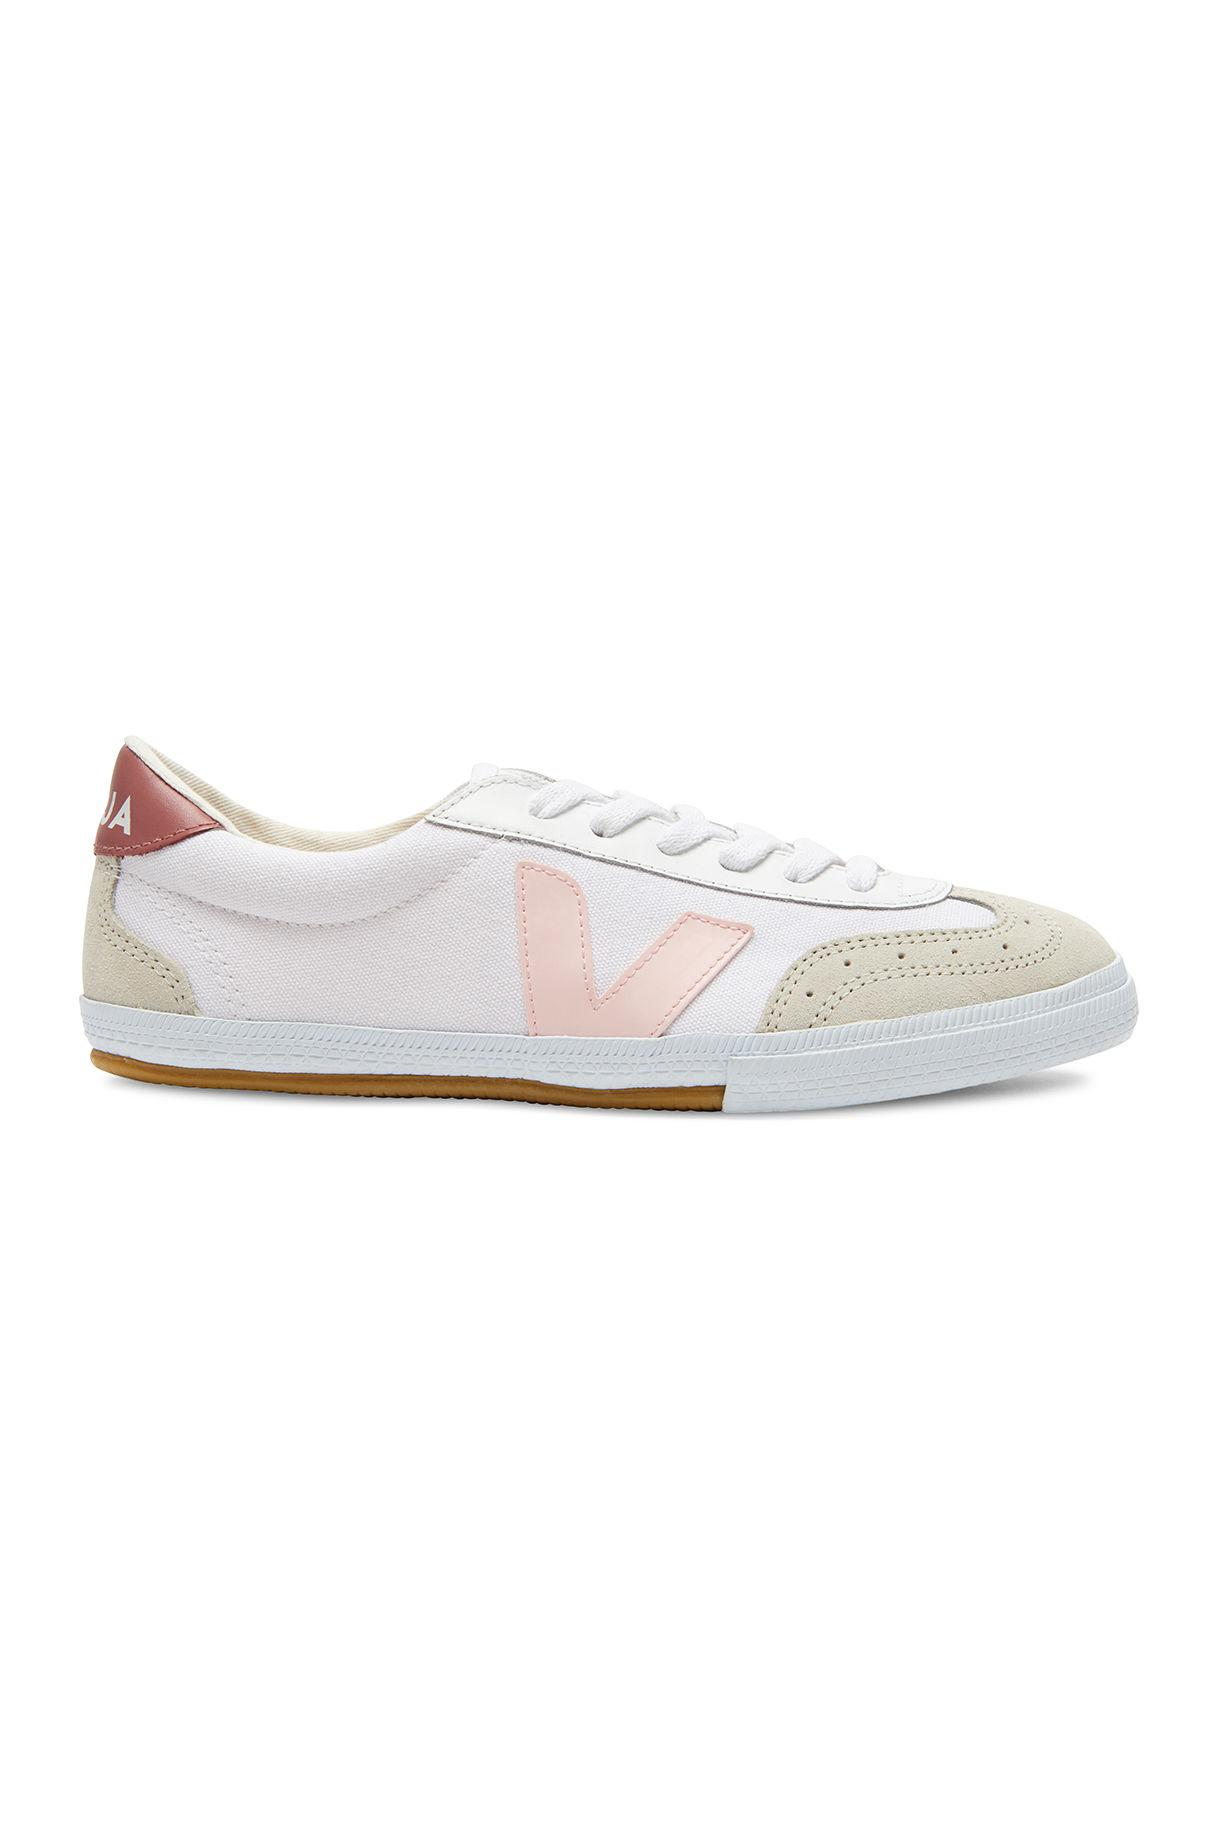 Rebecca Taylor Suede Veja Volley Sneaker in White